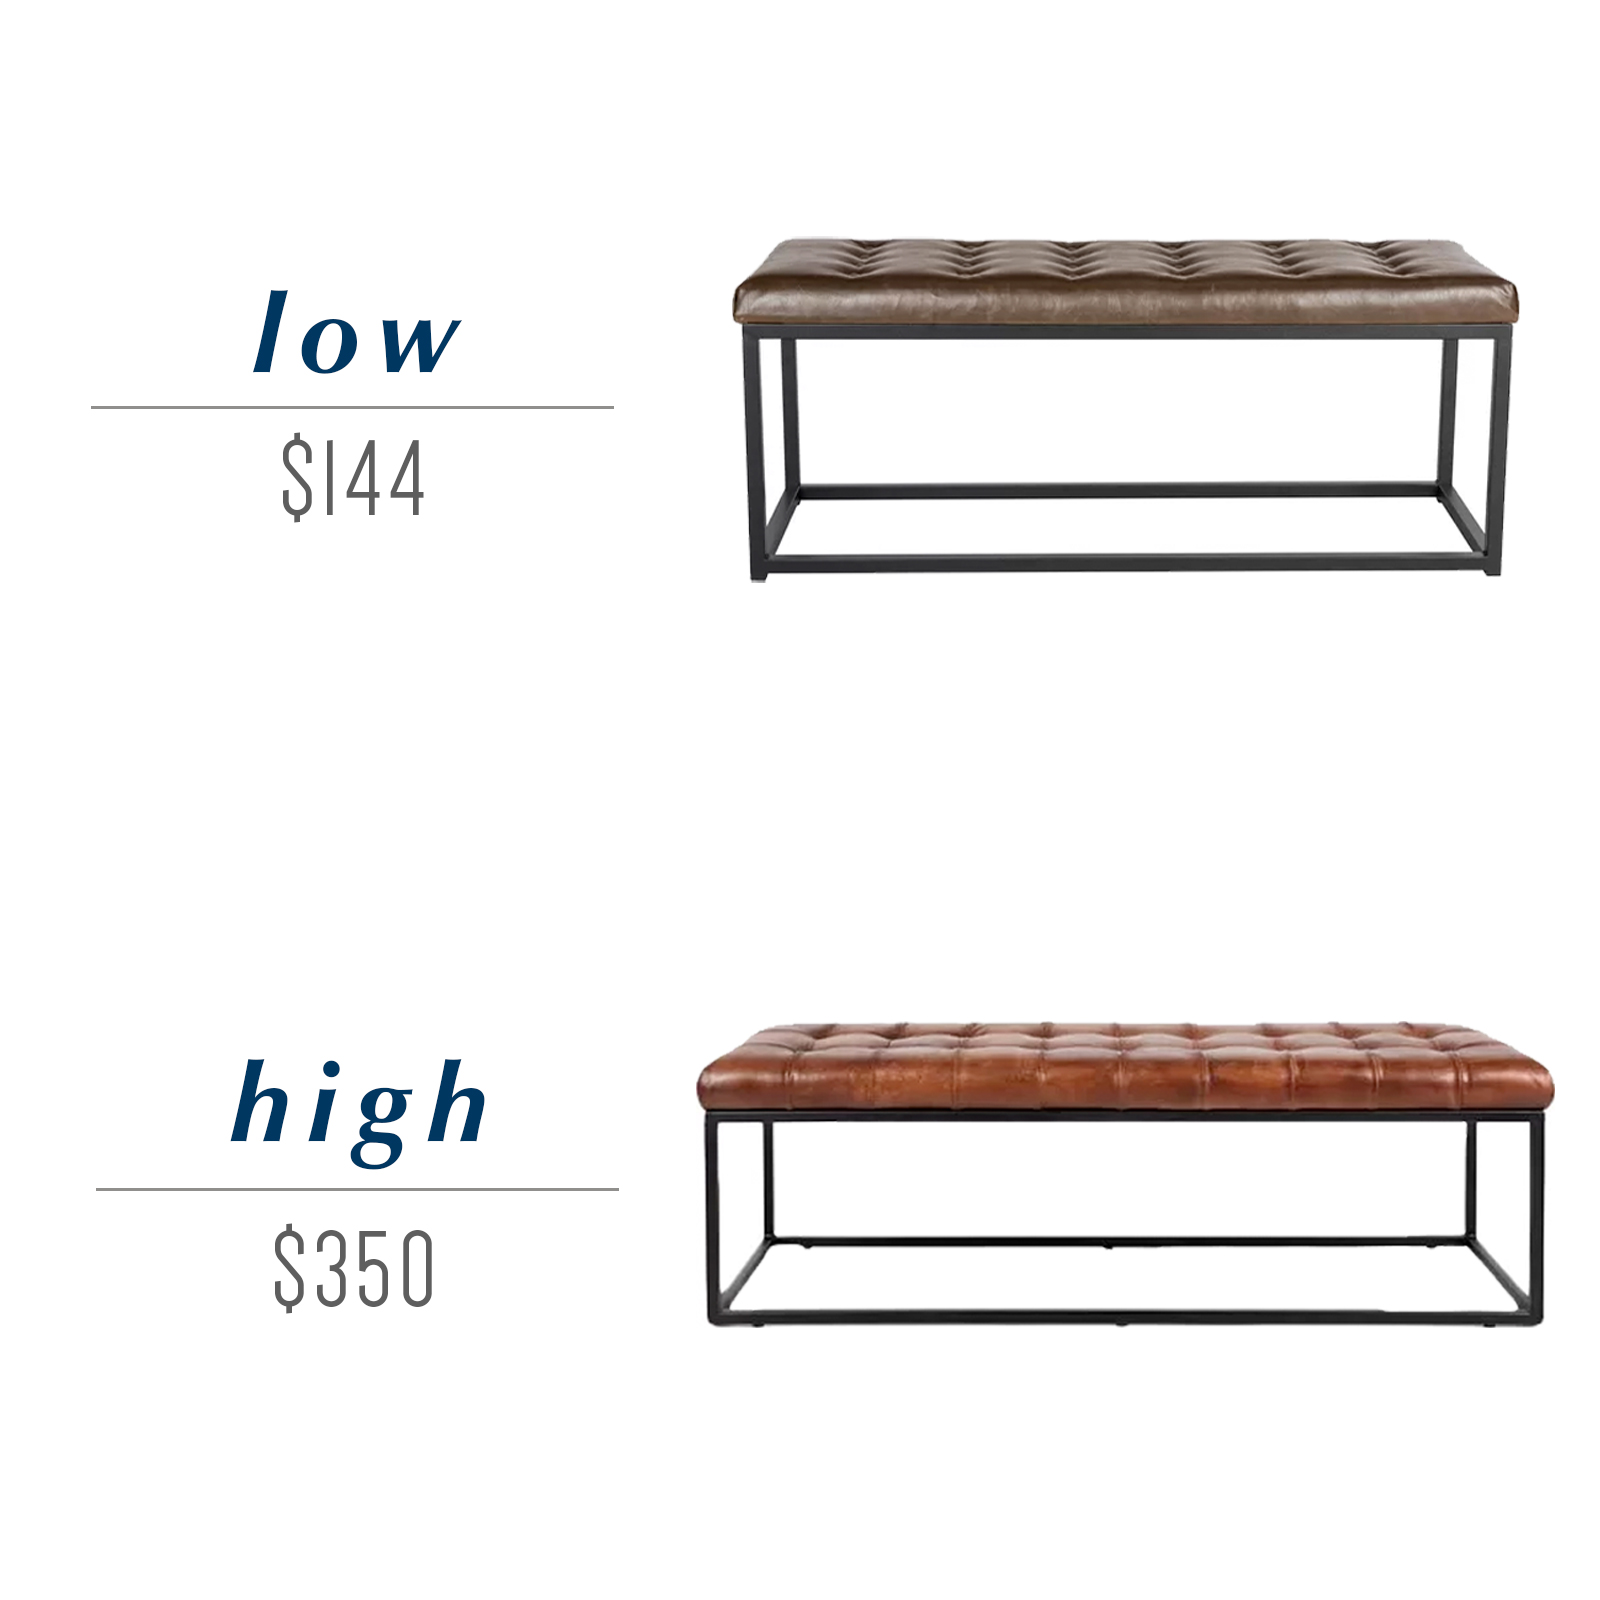 Get the look for less or decide to splurge! Come see the budget-friendly and spend-worthy pieces of furniture in this blog post including the high/low sources for this tufted leather bench! #industrialdecor #masculinehomedecor #industrialmodernfurniture